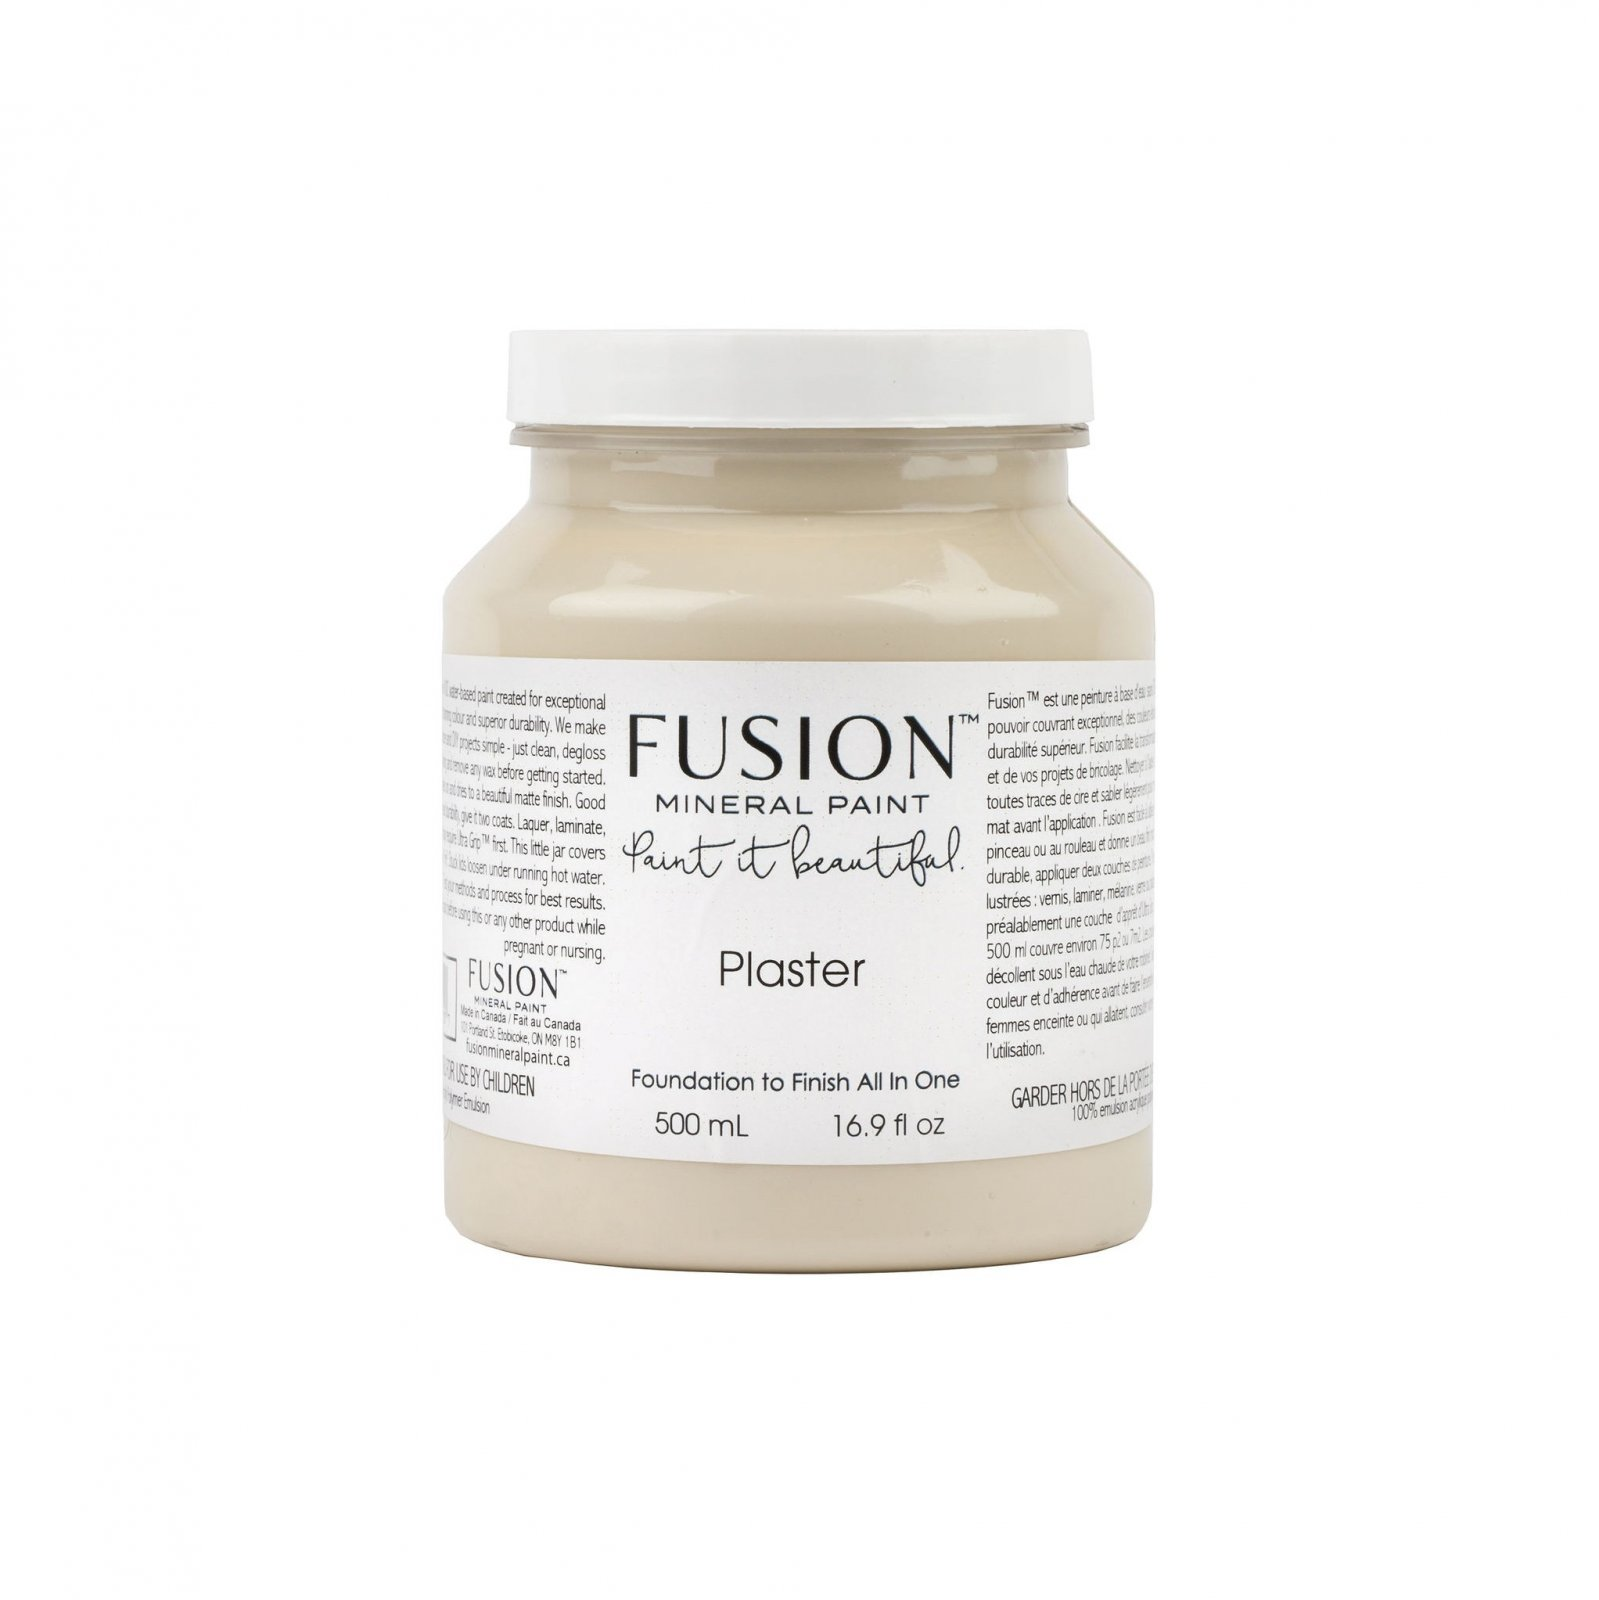 Plaster Pint Fusion Mineral Paint